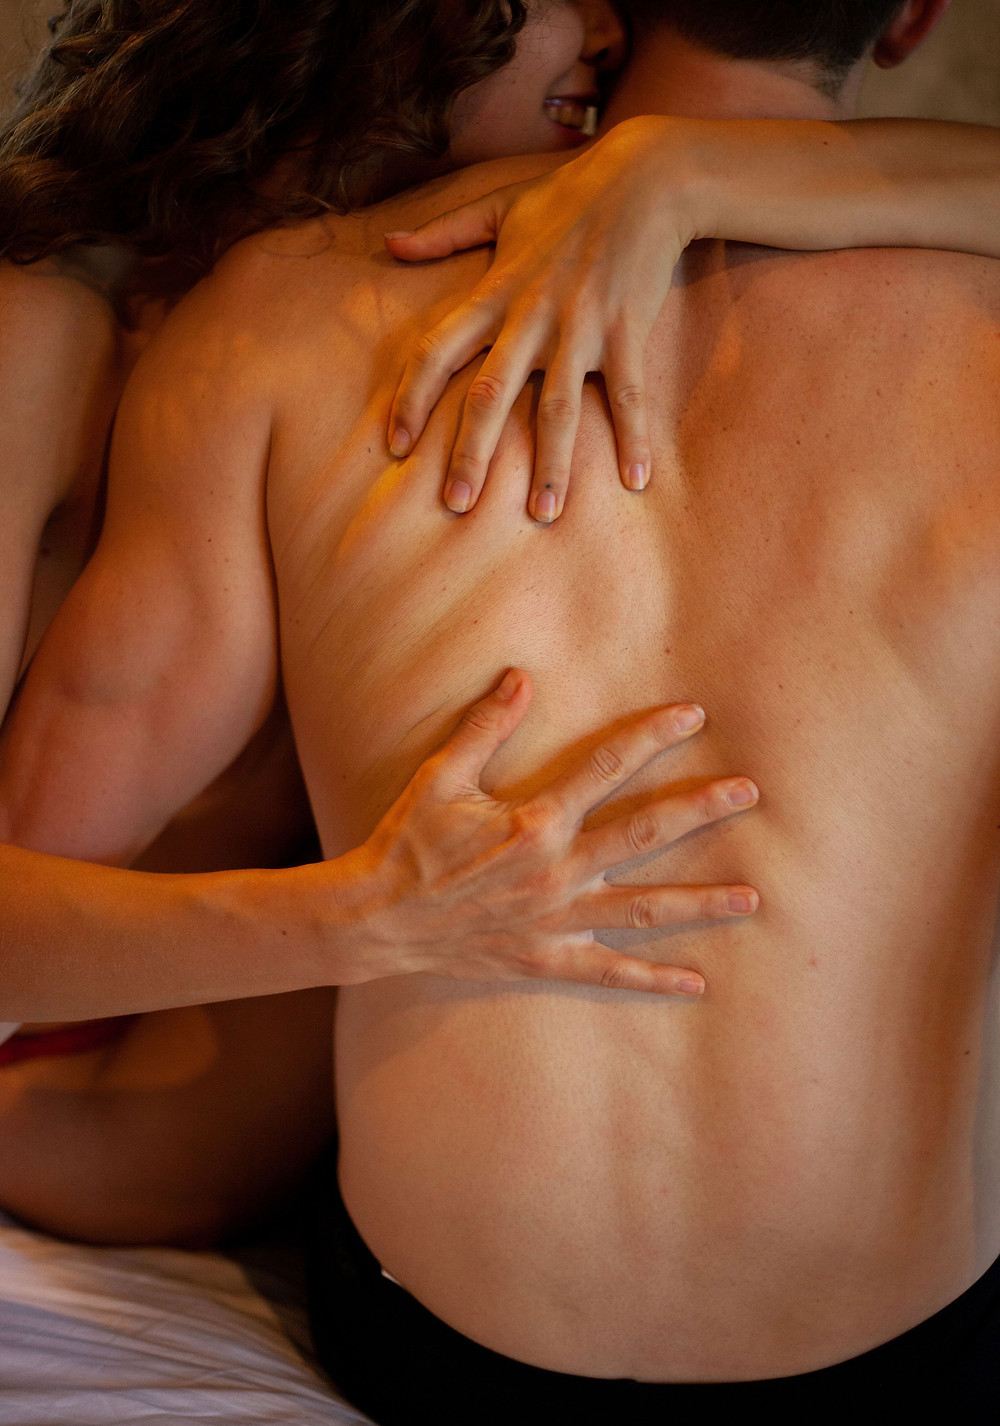 Couple in love having sex, showing the back of the man lying on the woman while she is whispering in his ears